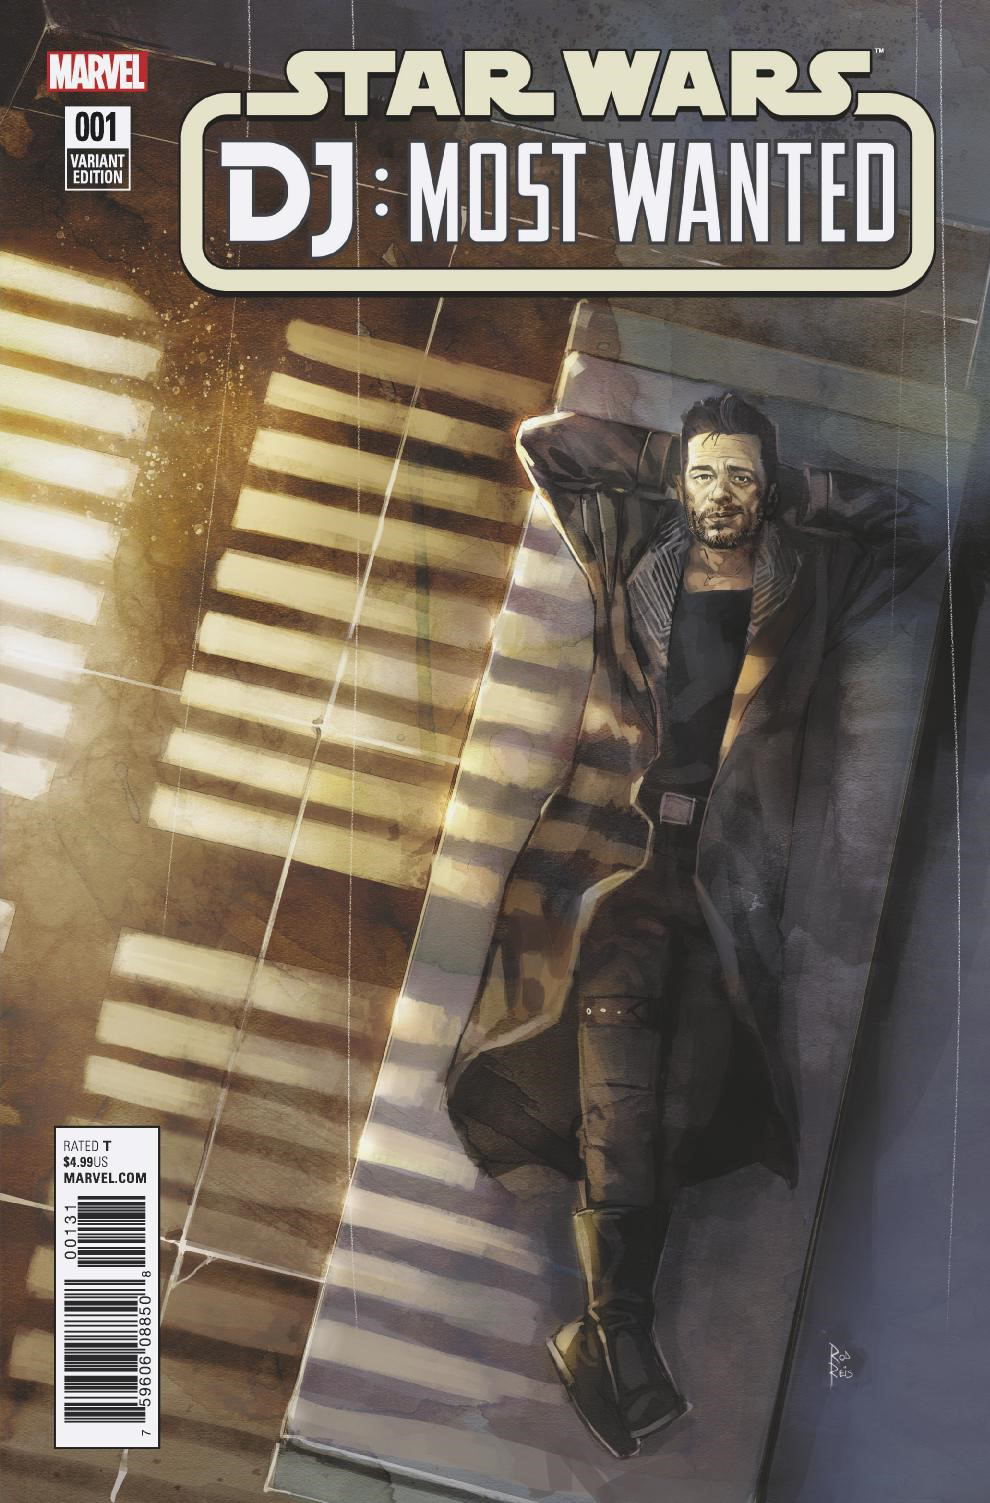 Star Wars: The Last Jedi: DJ: Most Wanted #1 (Rod Reis Variant Cover) (31.01.2018)